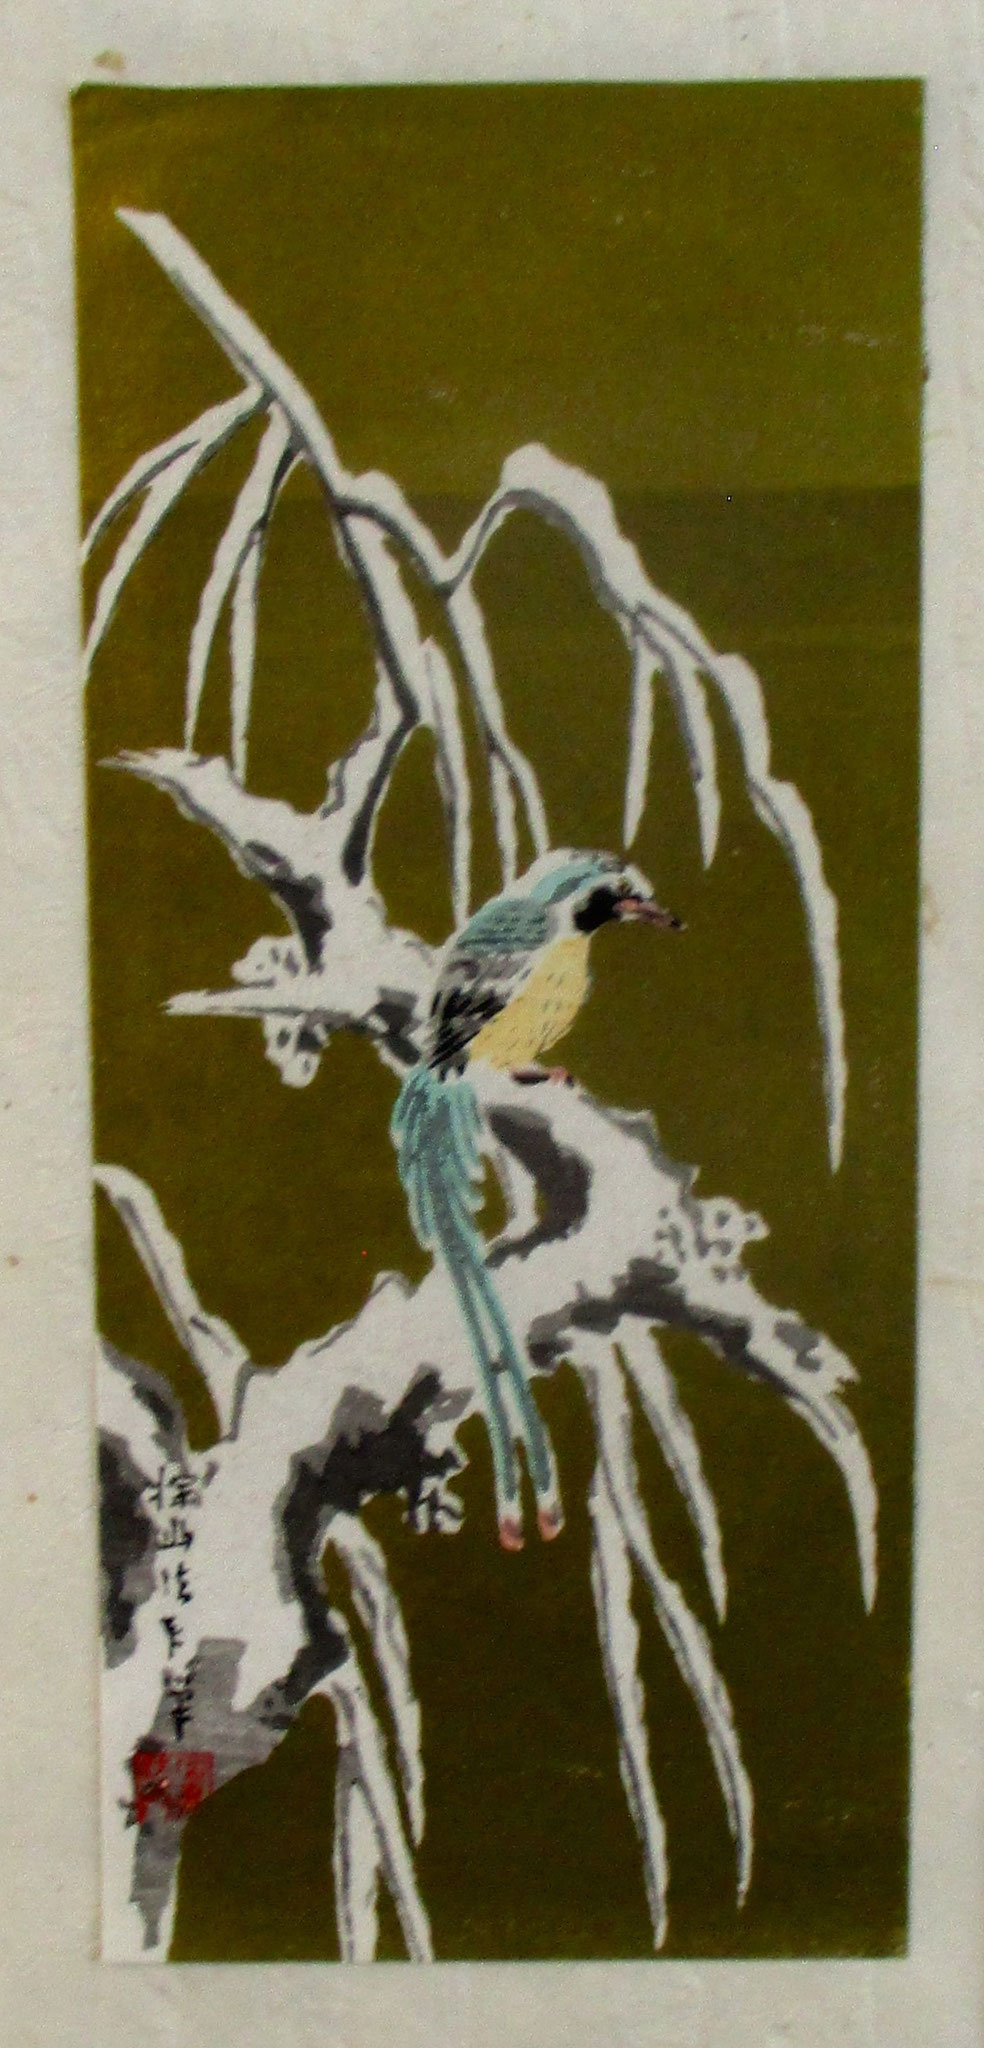 Parrot and Plum Tree オウムと梅の木 Vintage woodblock print, 11 x 14 matted, 2018